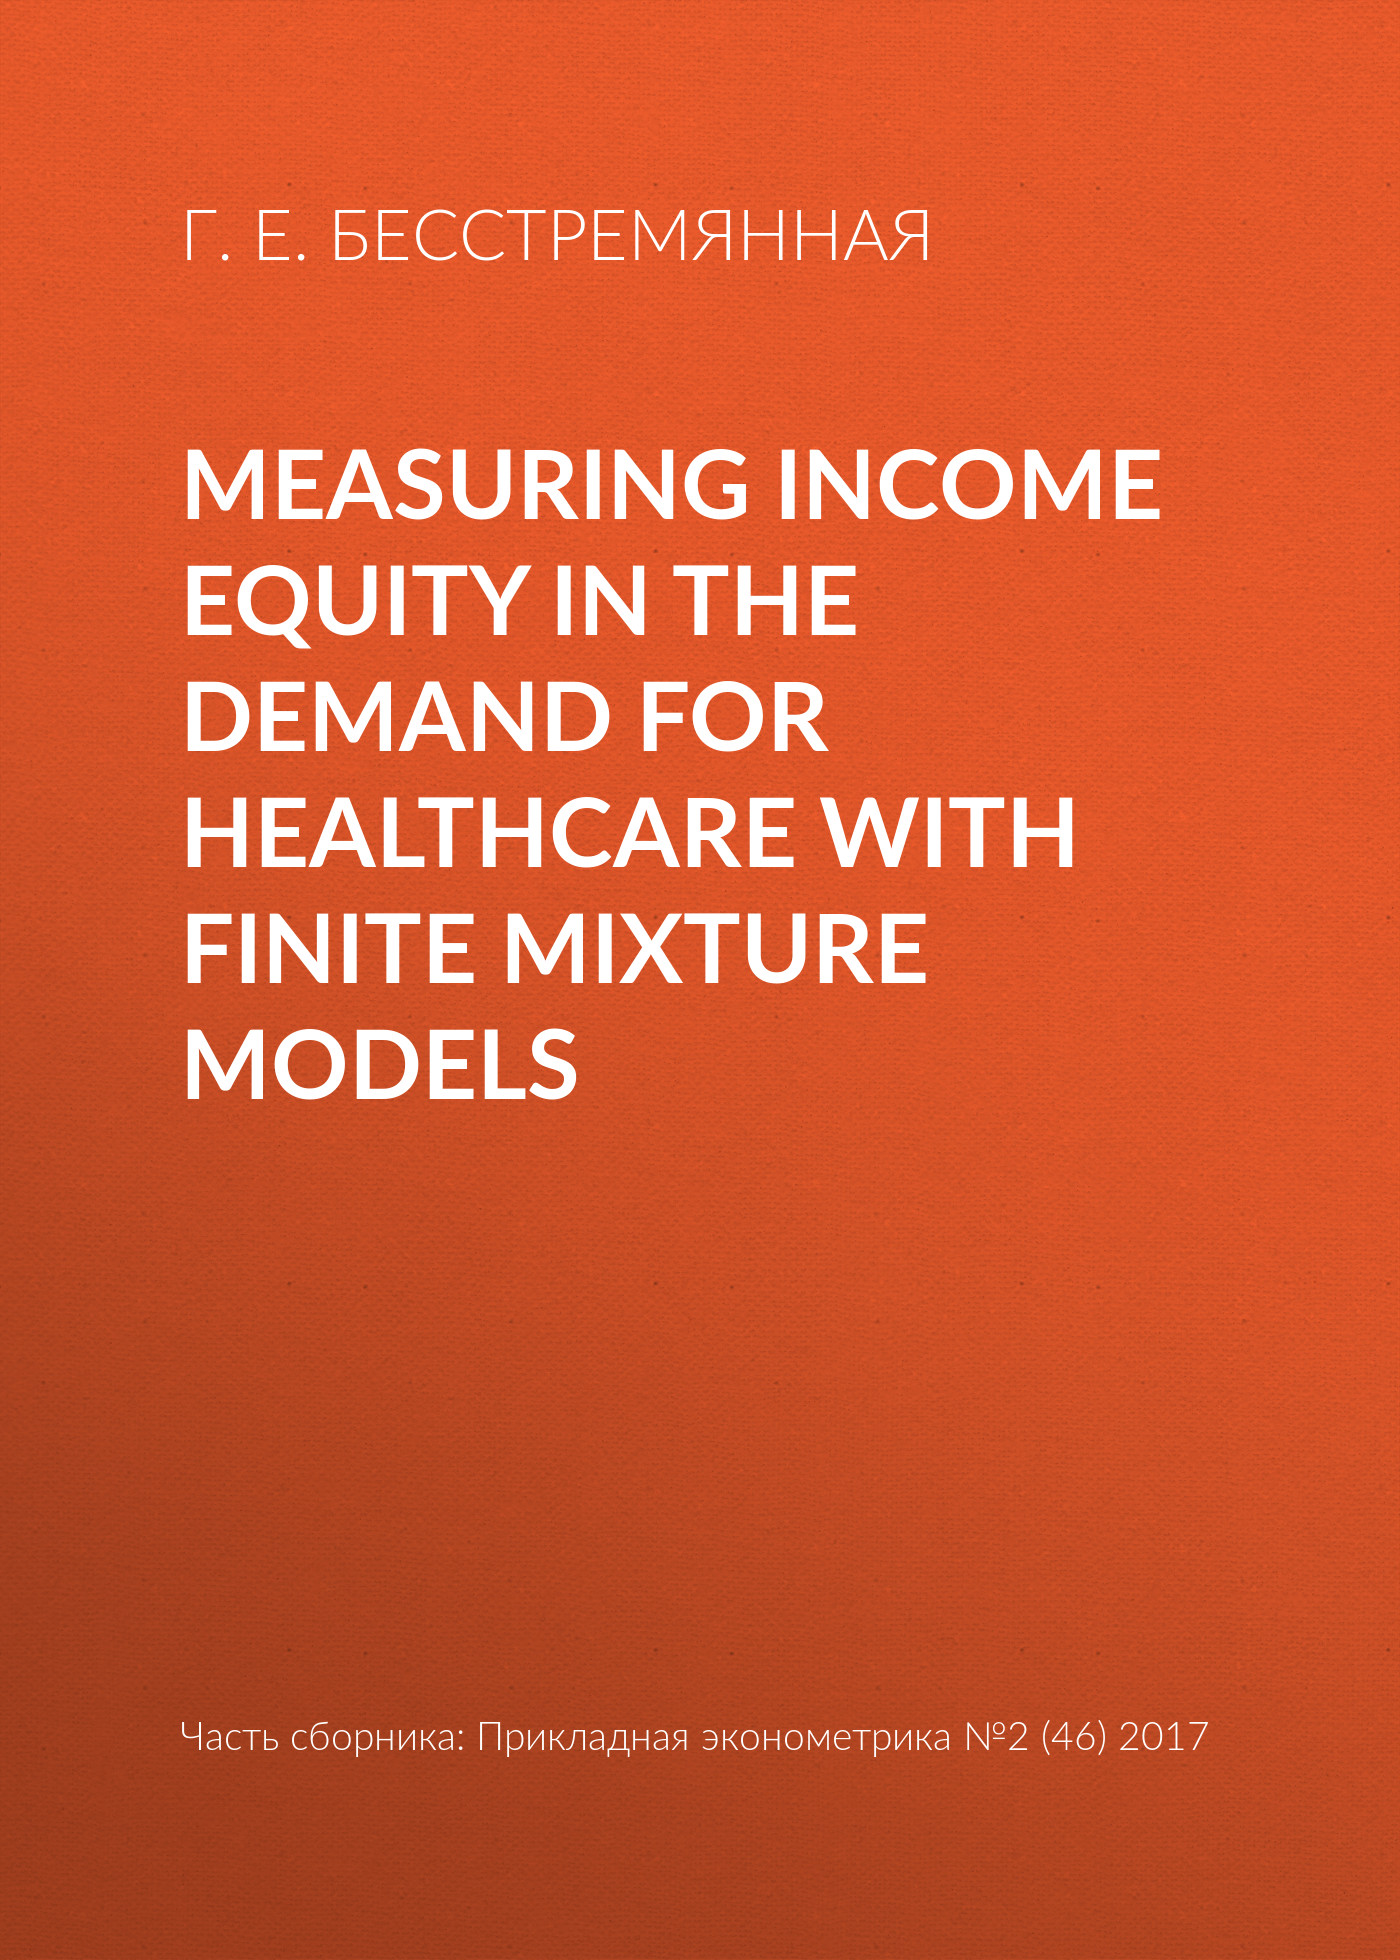 Measuring income equity in the demand for healthcare with finite mixture models